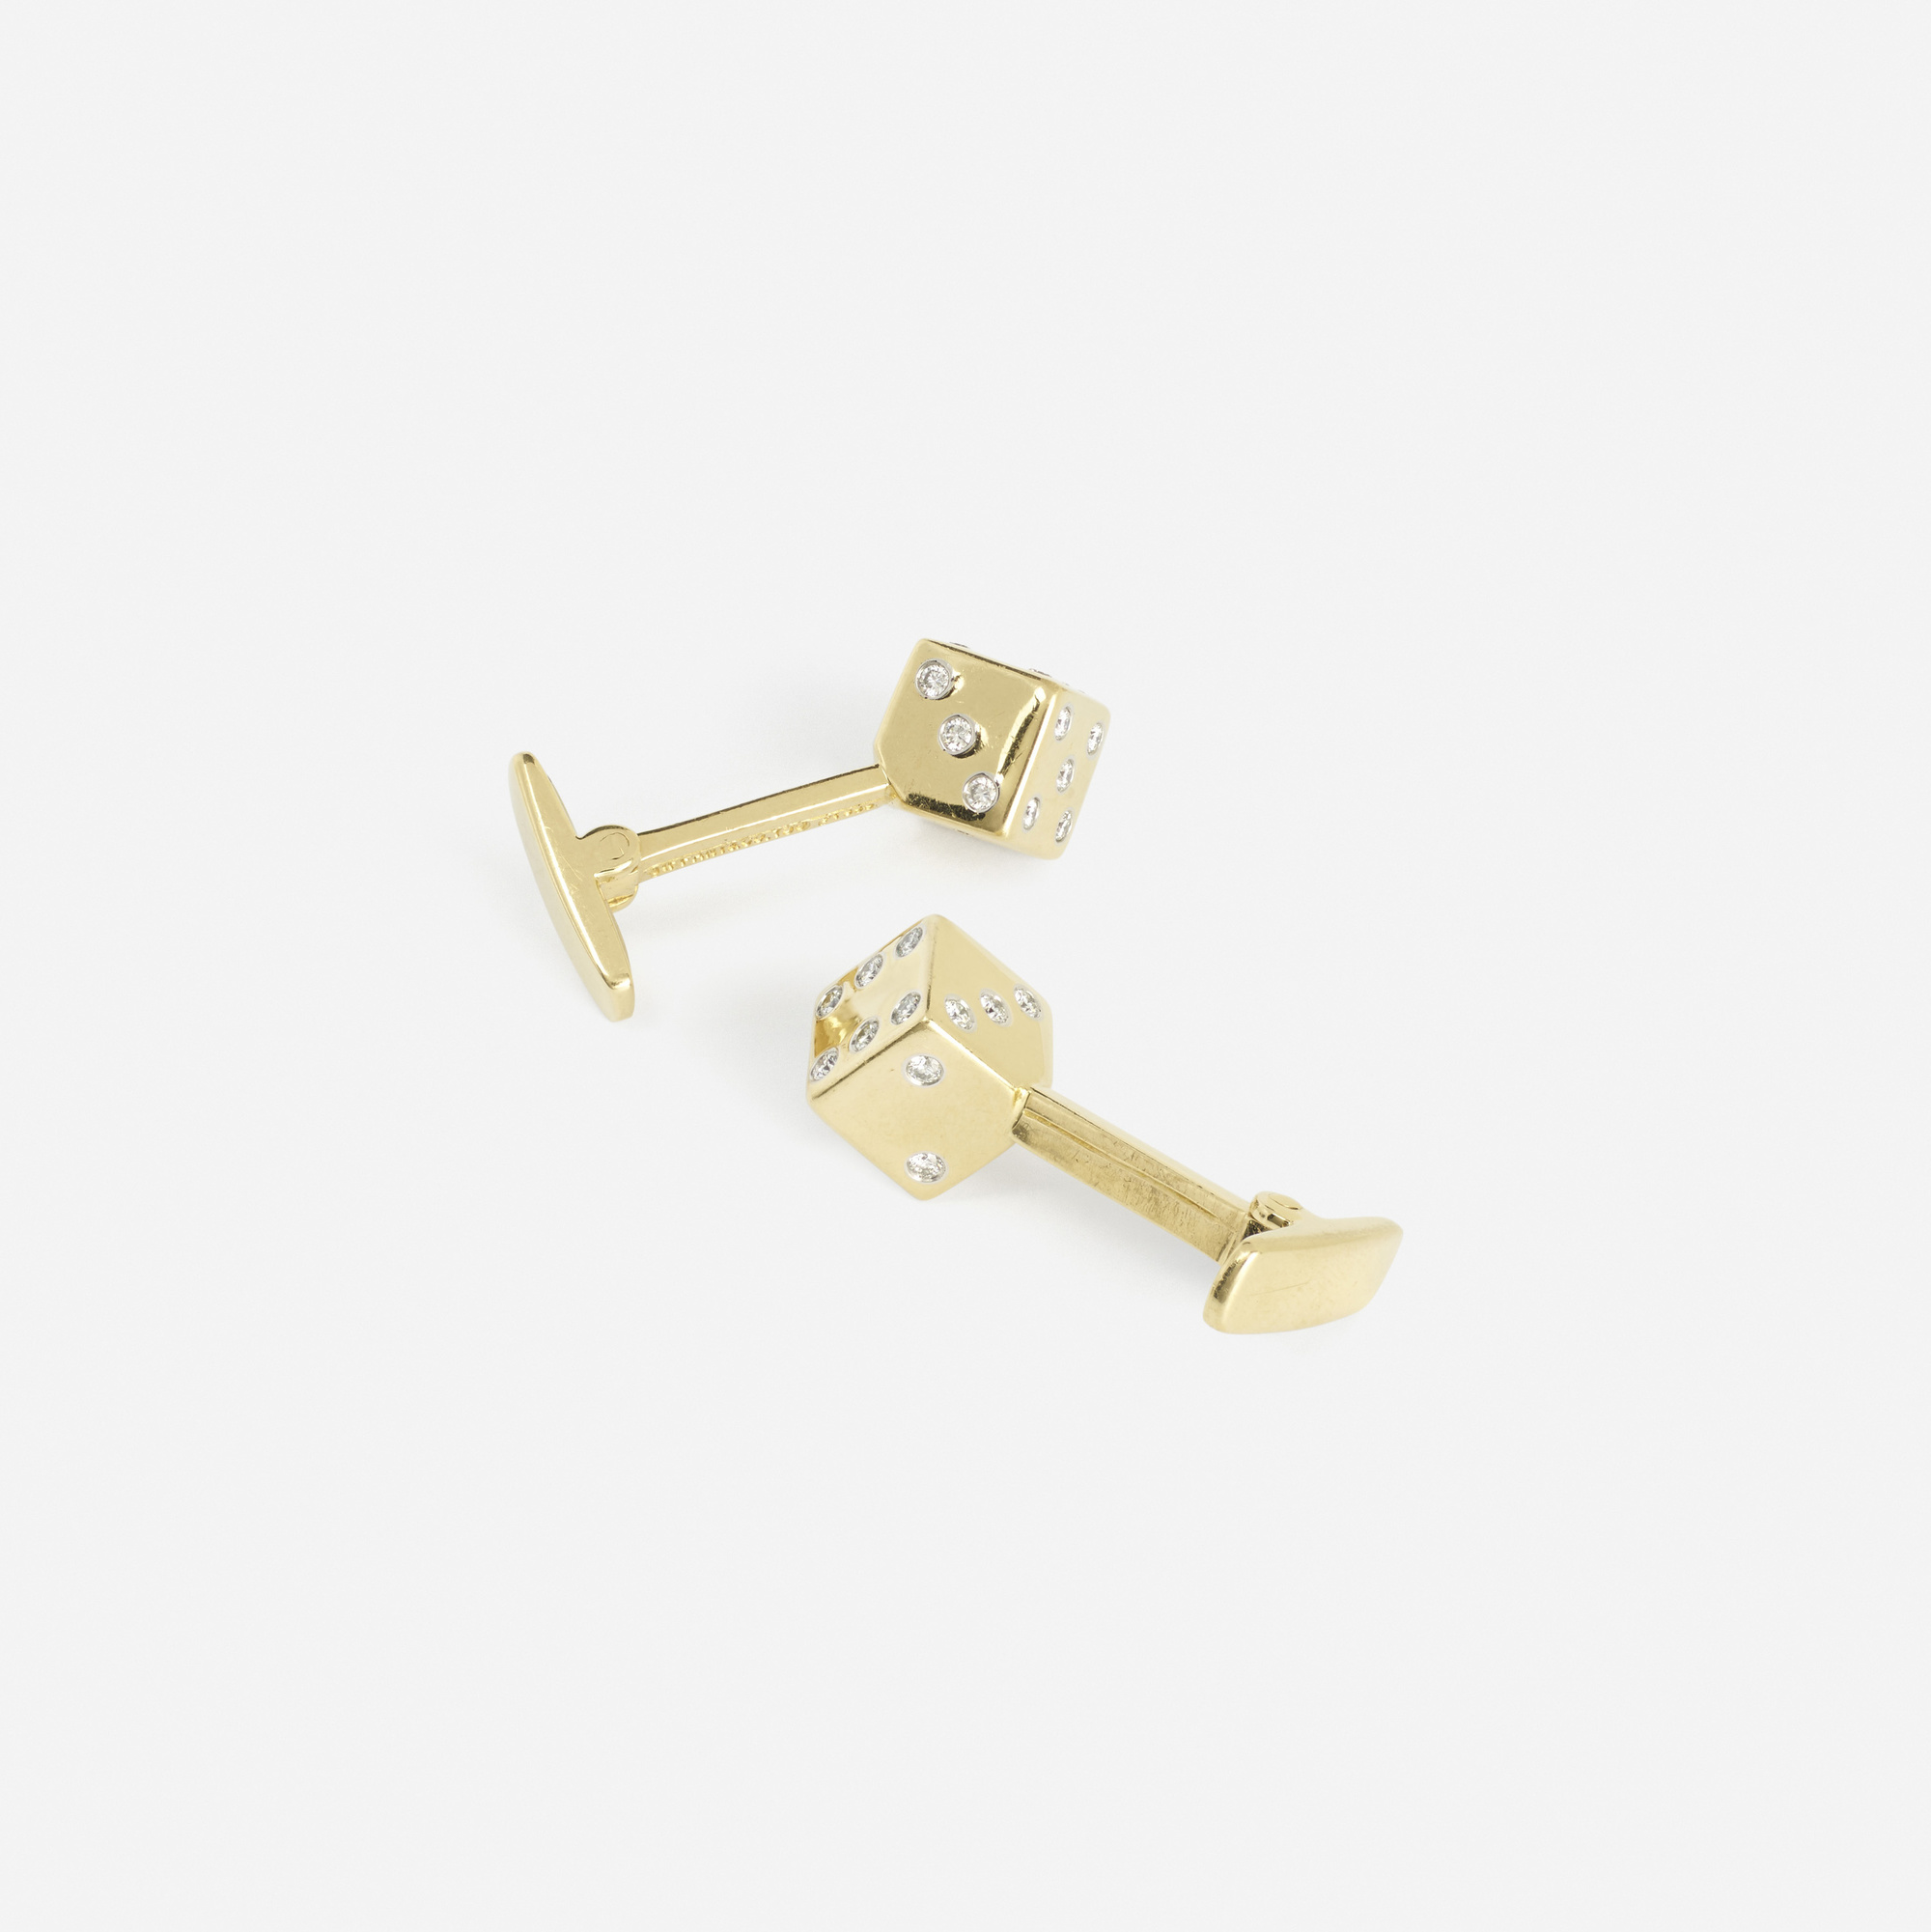 301: Tiffany & Co. / A pair of gold, platinum and diamond Dice cufflinks (1 of 2)